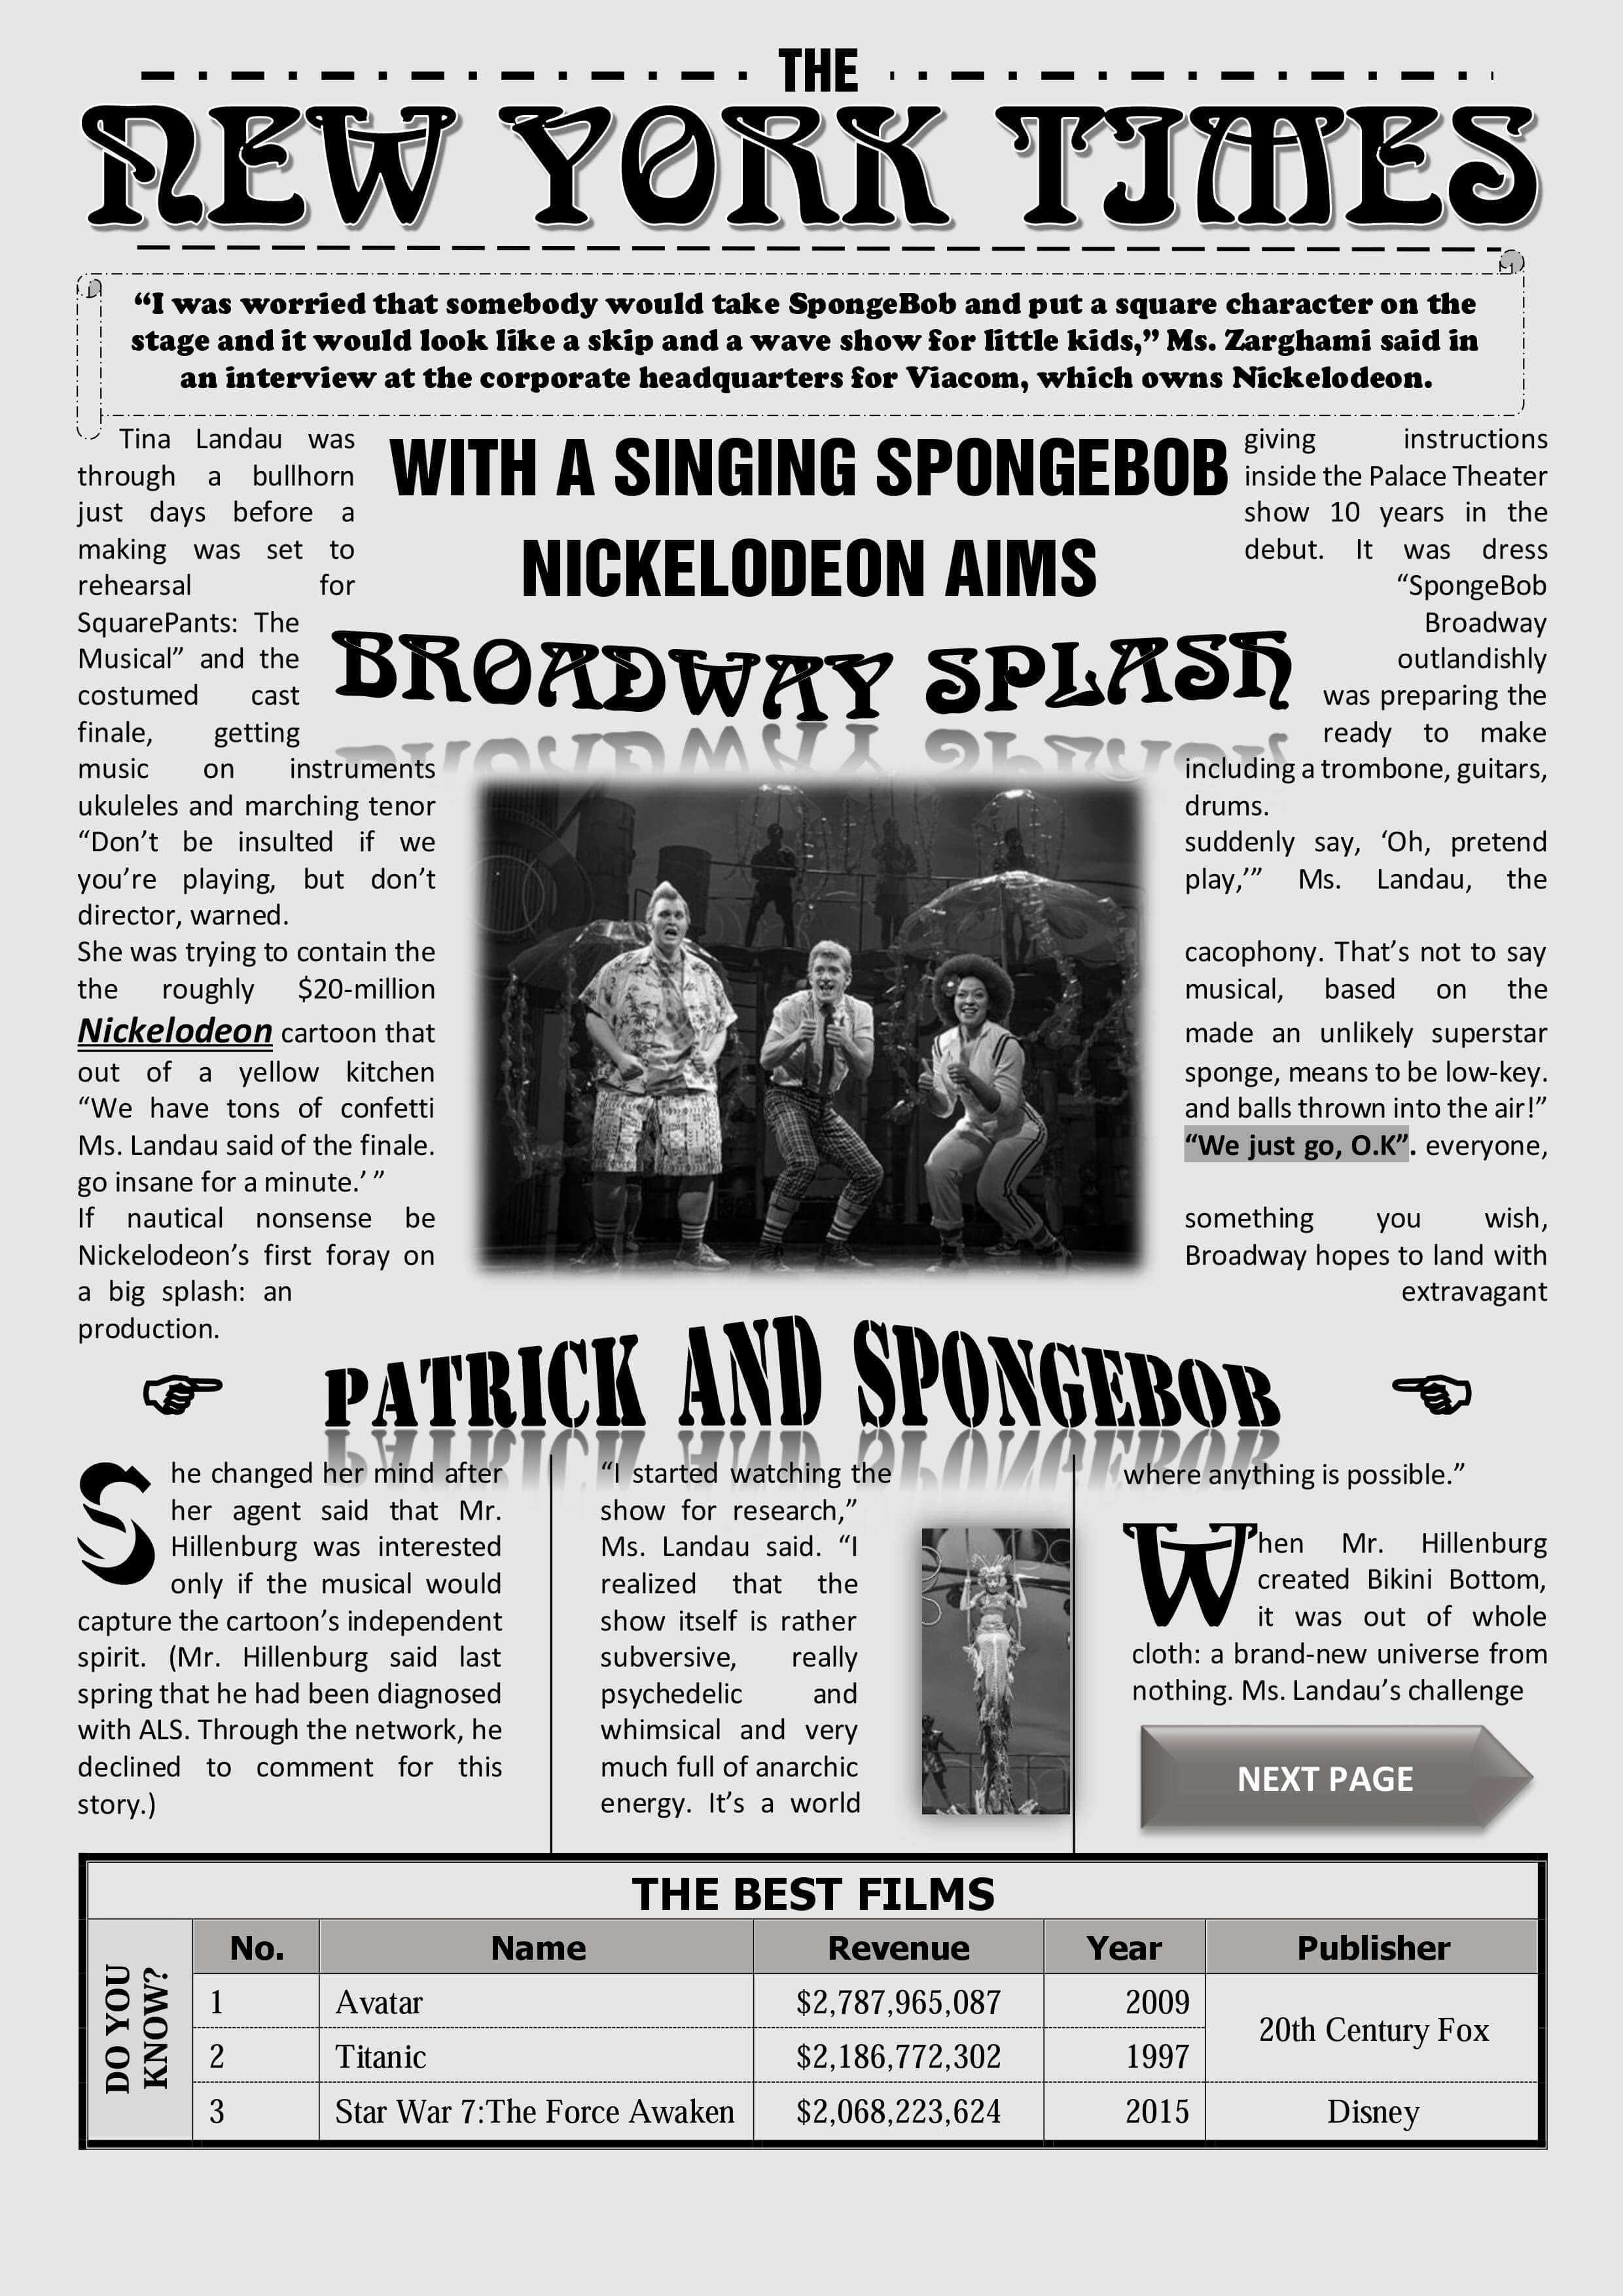 Newspaper Template On Word New York Times Newspaper With Regarding Newspaper Template For Powerpoint